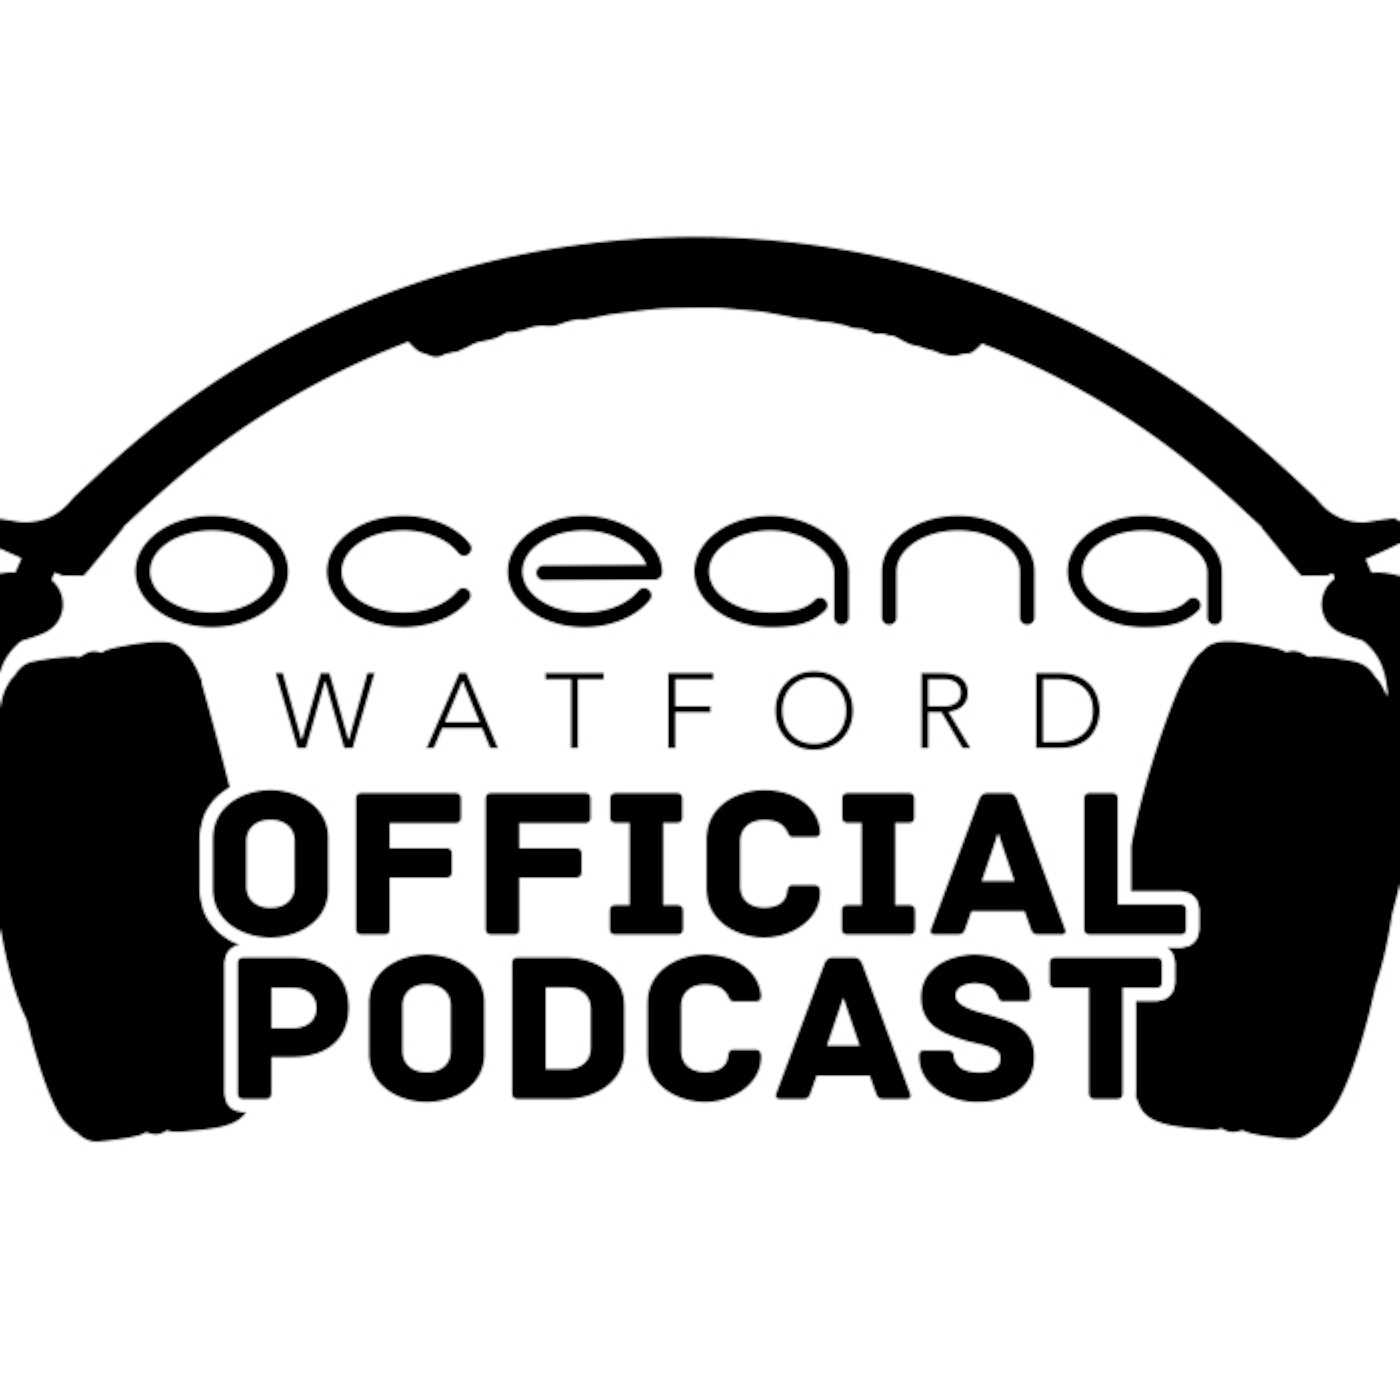 Oceana Watford Official Podcast